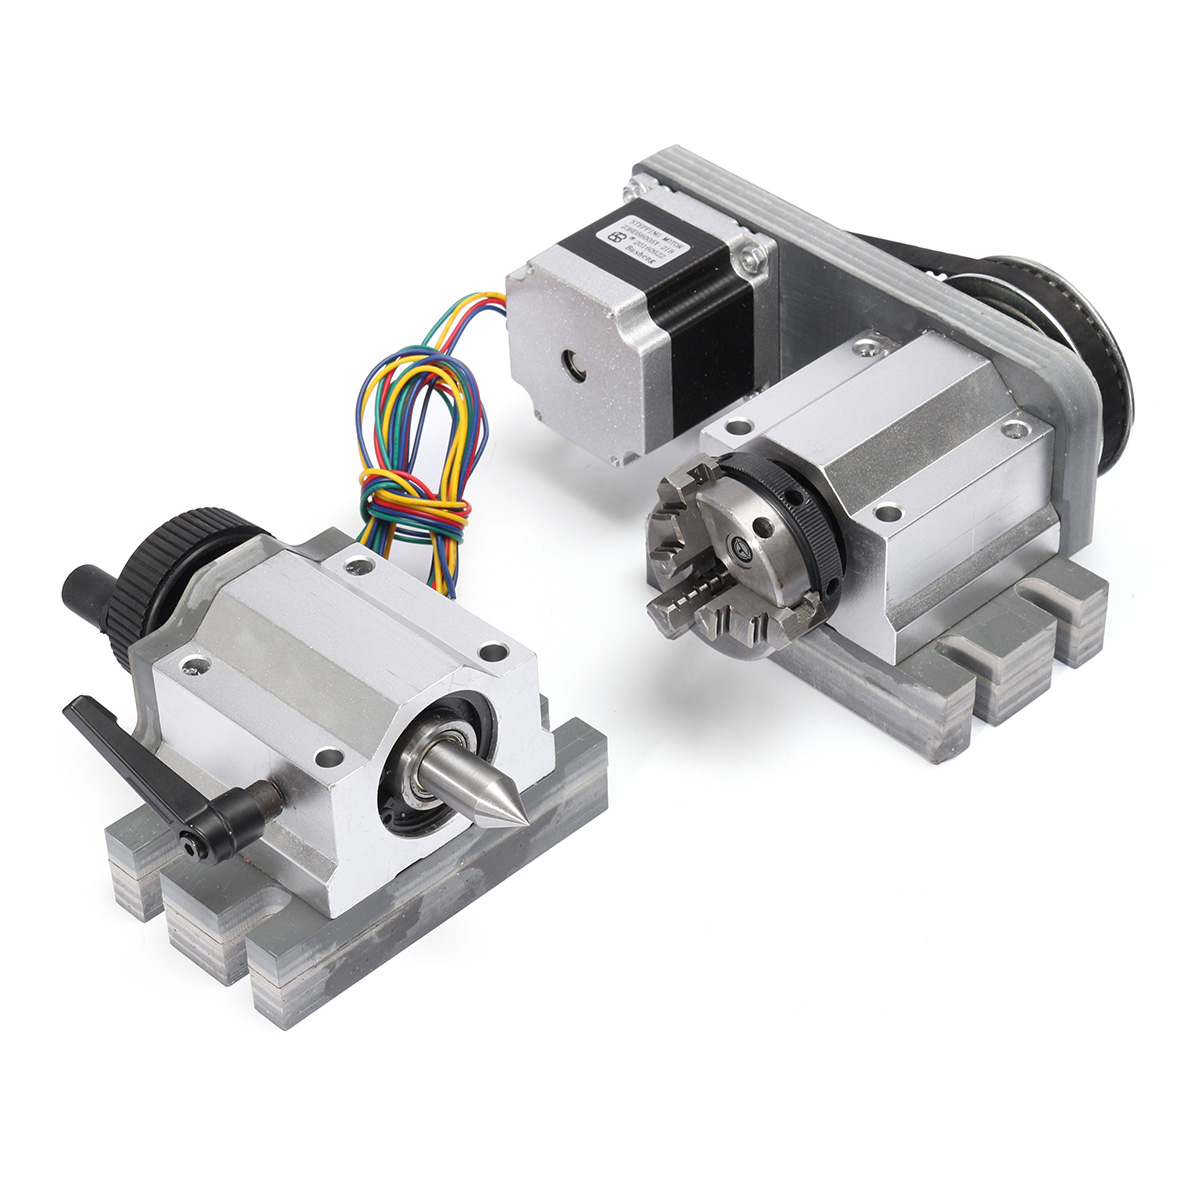 WOLIKE CNC Router Rotational Rotary Axis A-axis 4th-axis 3-Jaw 80mm & Tail stock Stepper Motor for Engraving Machine cnc milling machine part rotational a axis 80mm 3 jaw chuck page 5